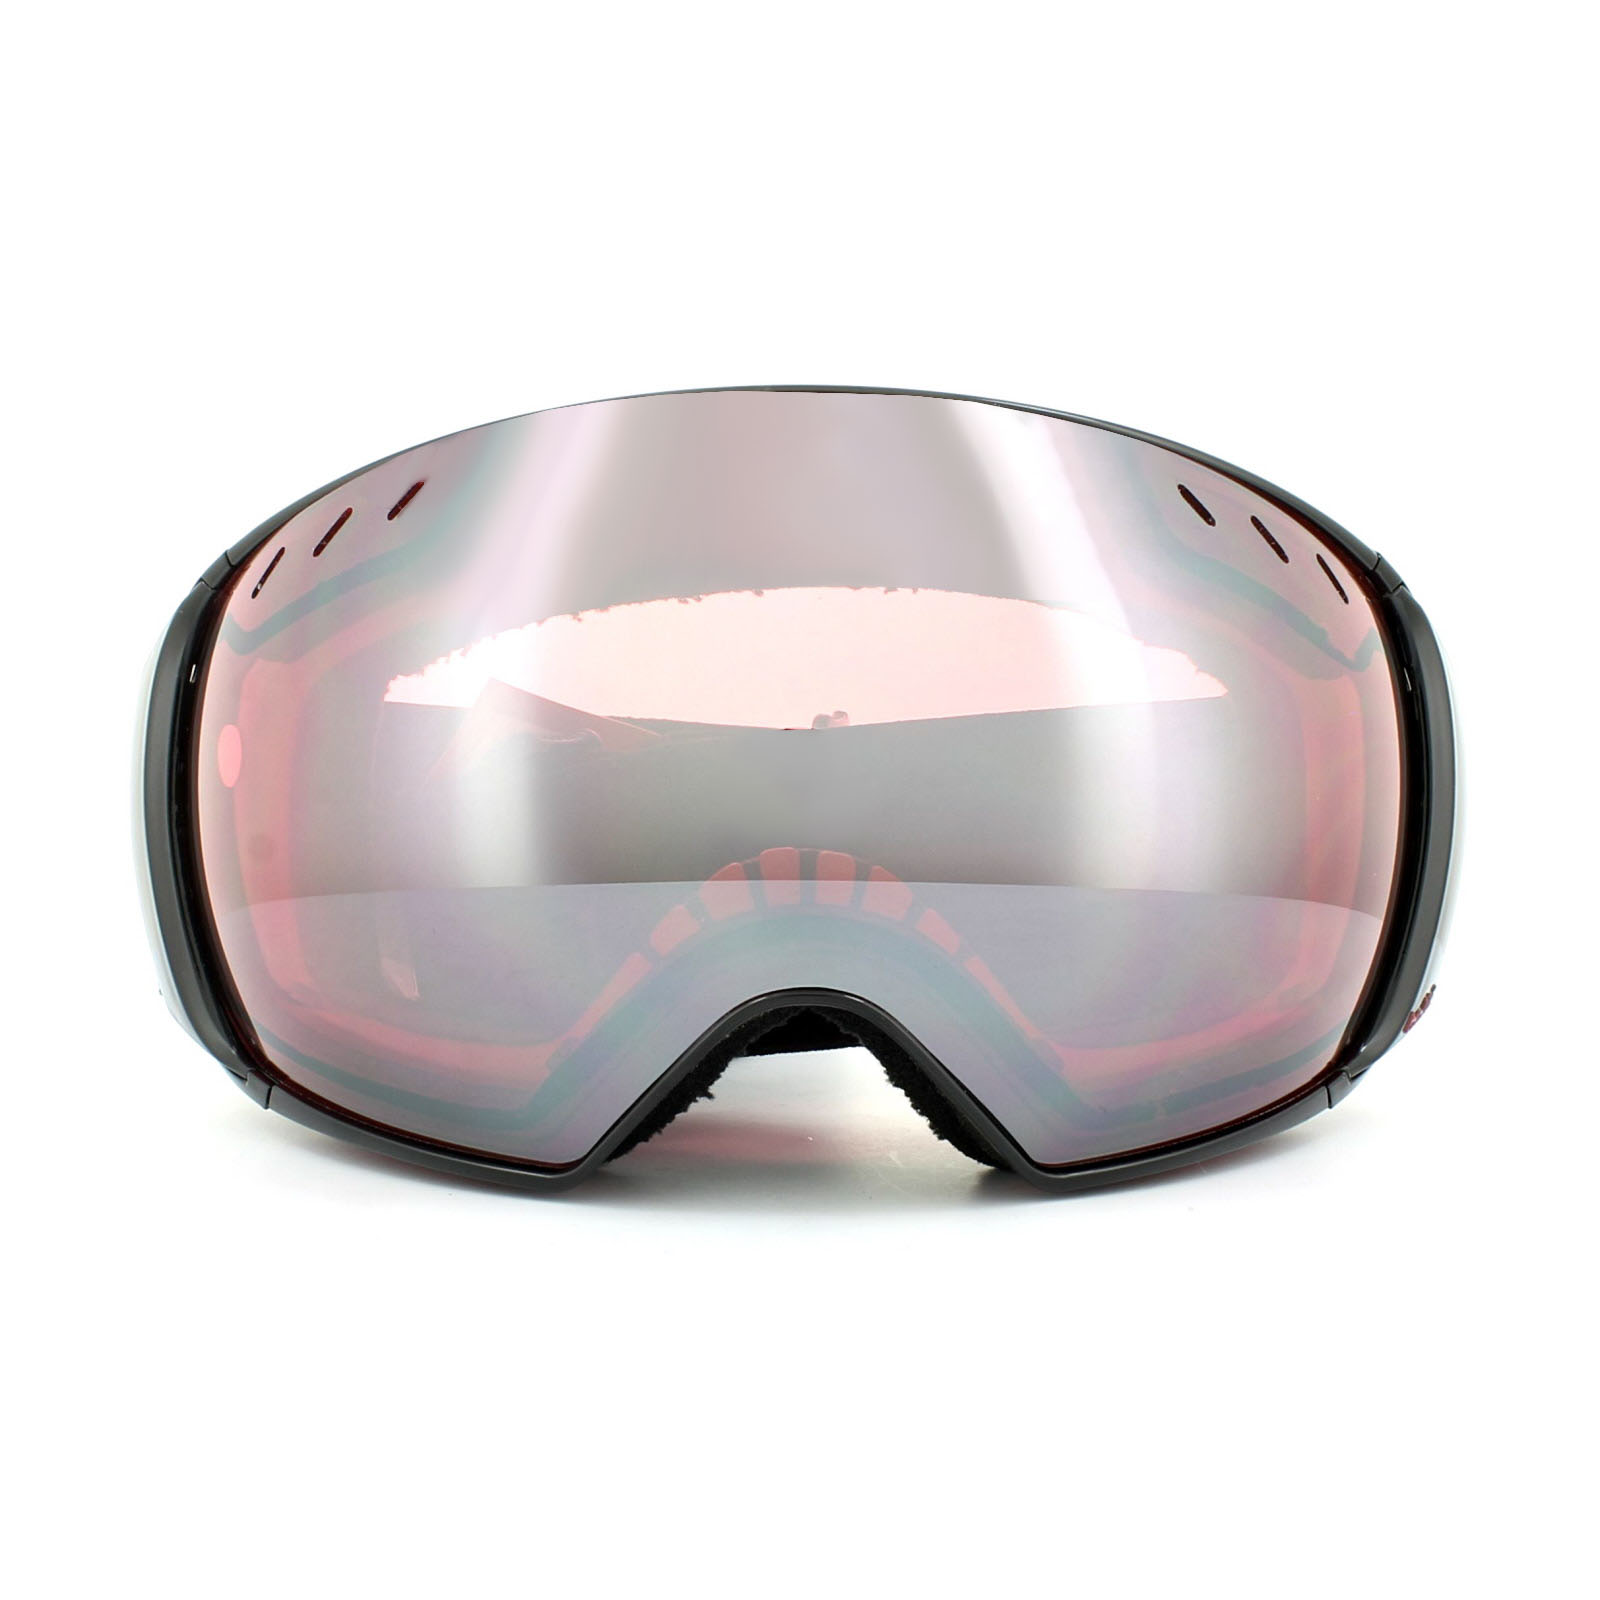 Cheap Bolle Virtuose Goggles Discounted Sunglasses